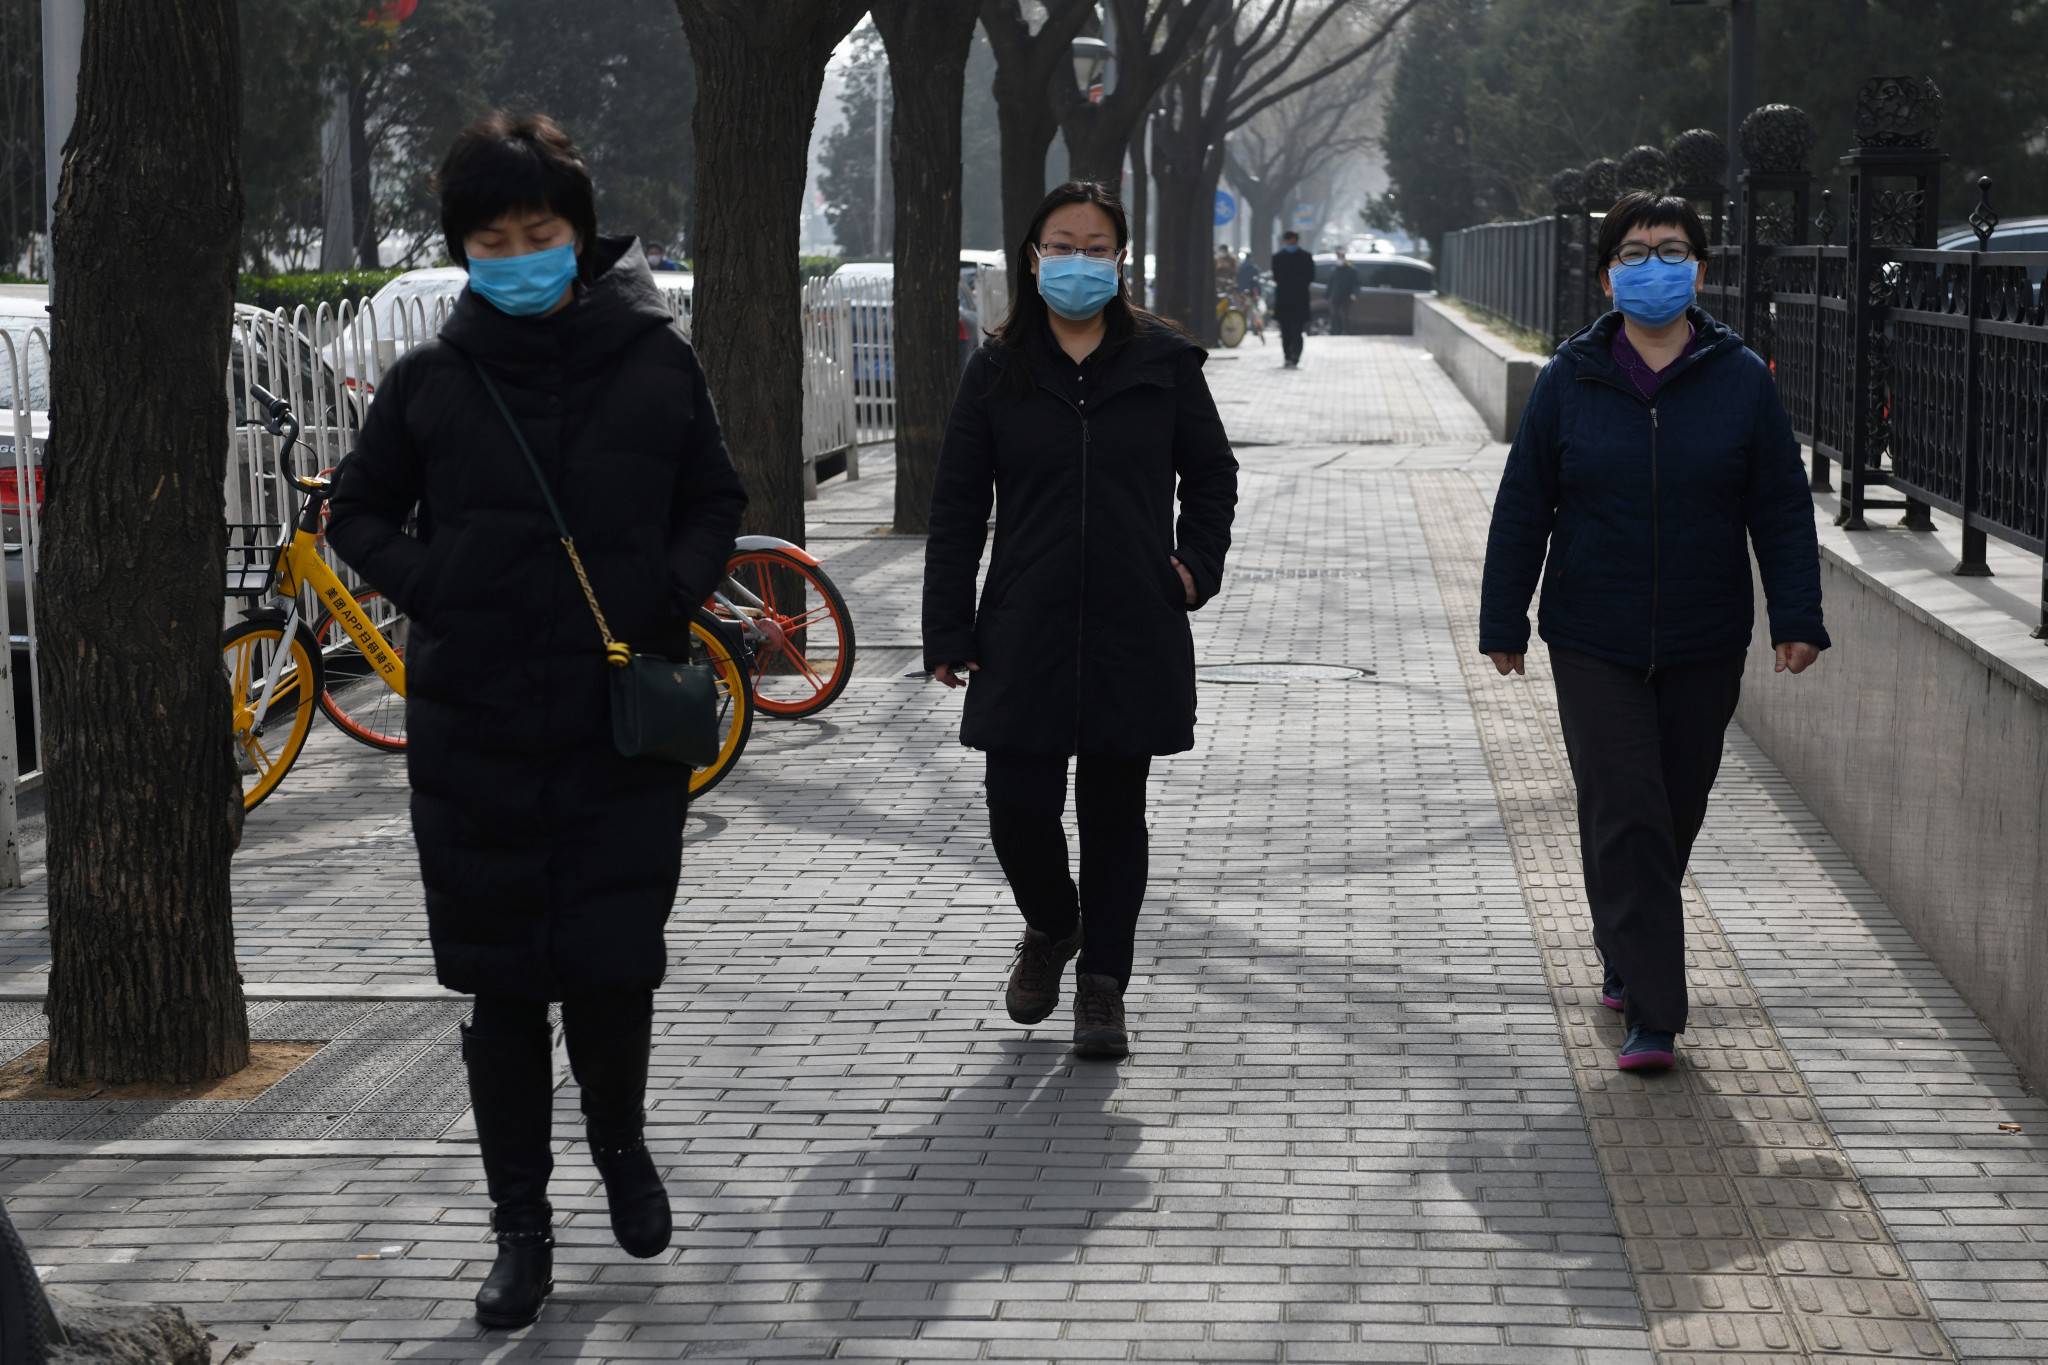 The latest figures from China put the death toll from coronavirus at 2,236 people and total infections at more than 75,000 ©Getty Images